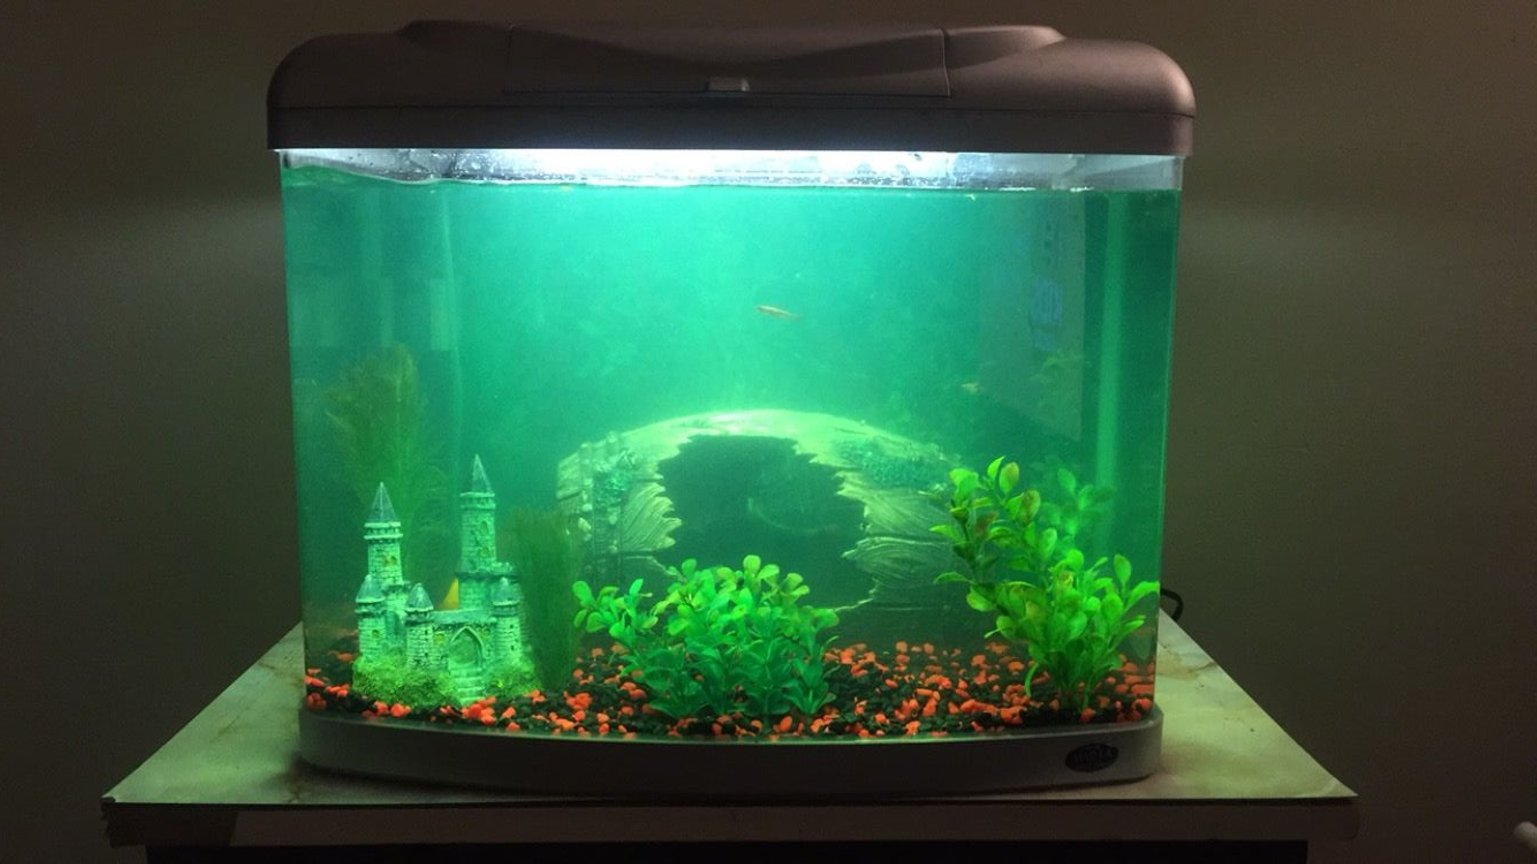 20 gallons freshwater fish tank (mostly fish and non-living decorations) - This is the latest aquarium setup. My progress is slow but I'm enjoying the hobby